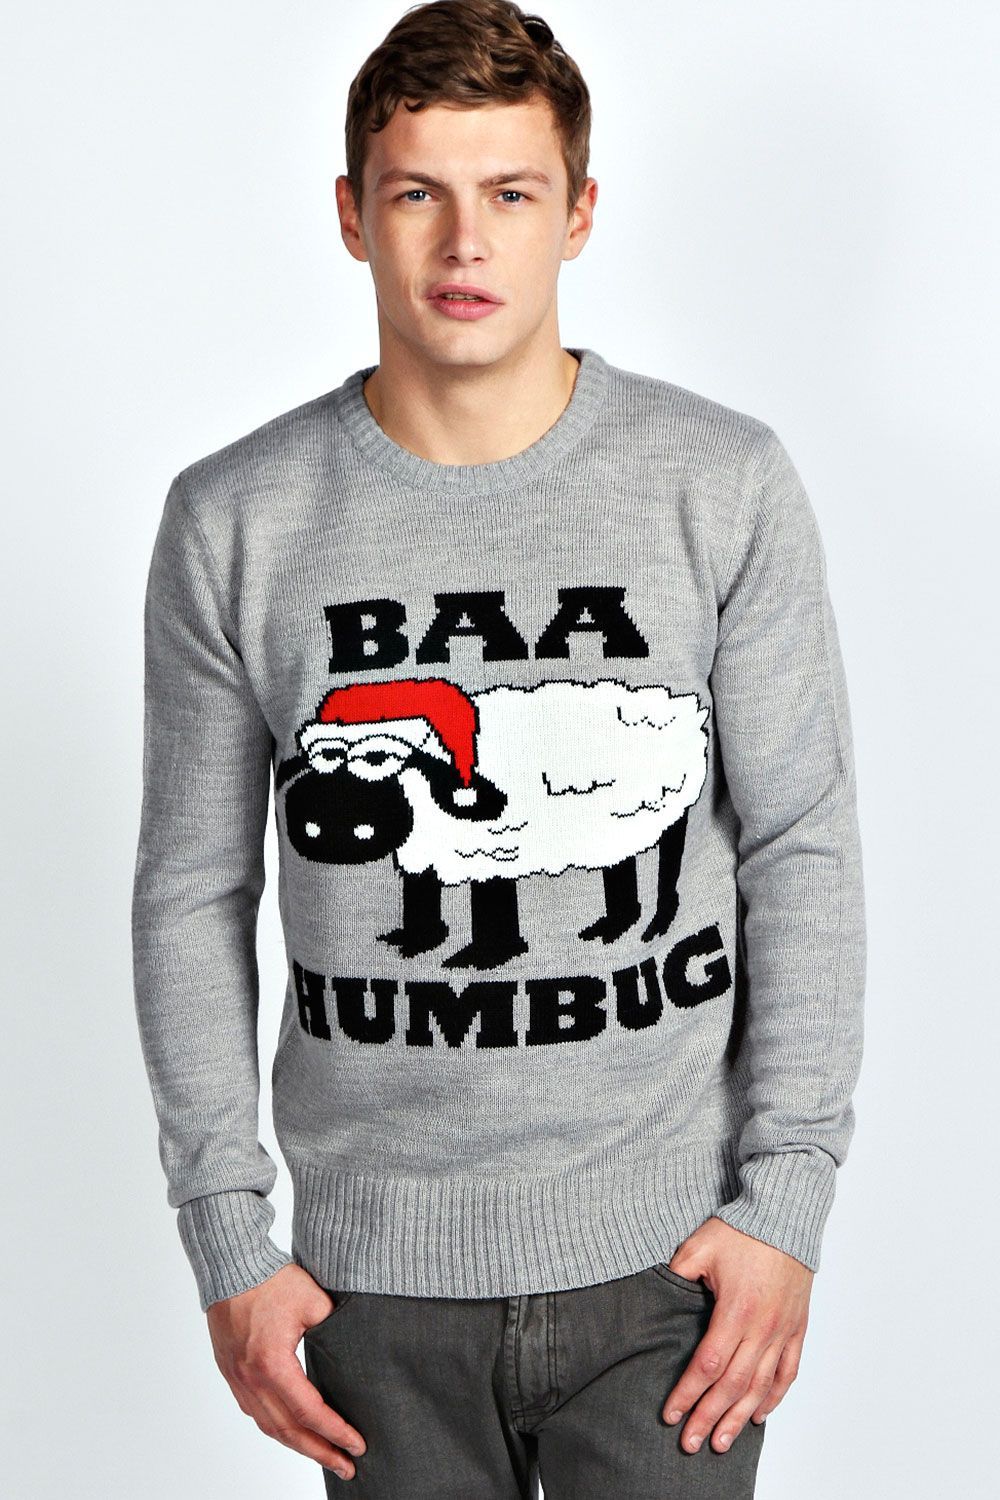 Sheep Christmas Jumper Christmas Jumpers Christmas Jumper Day Funny Christmas Jumper